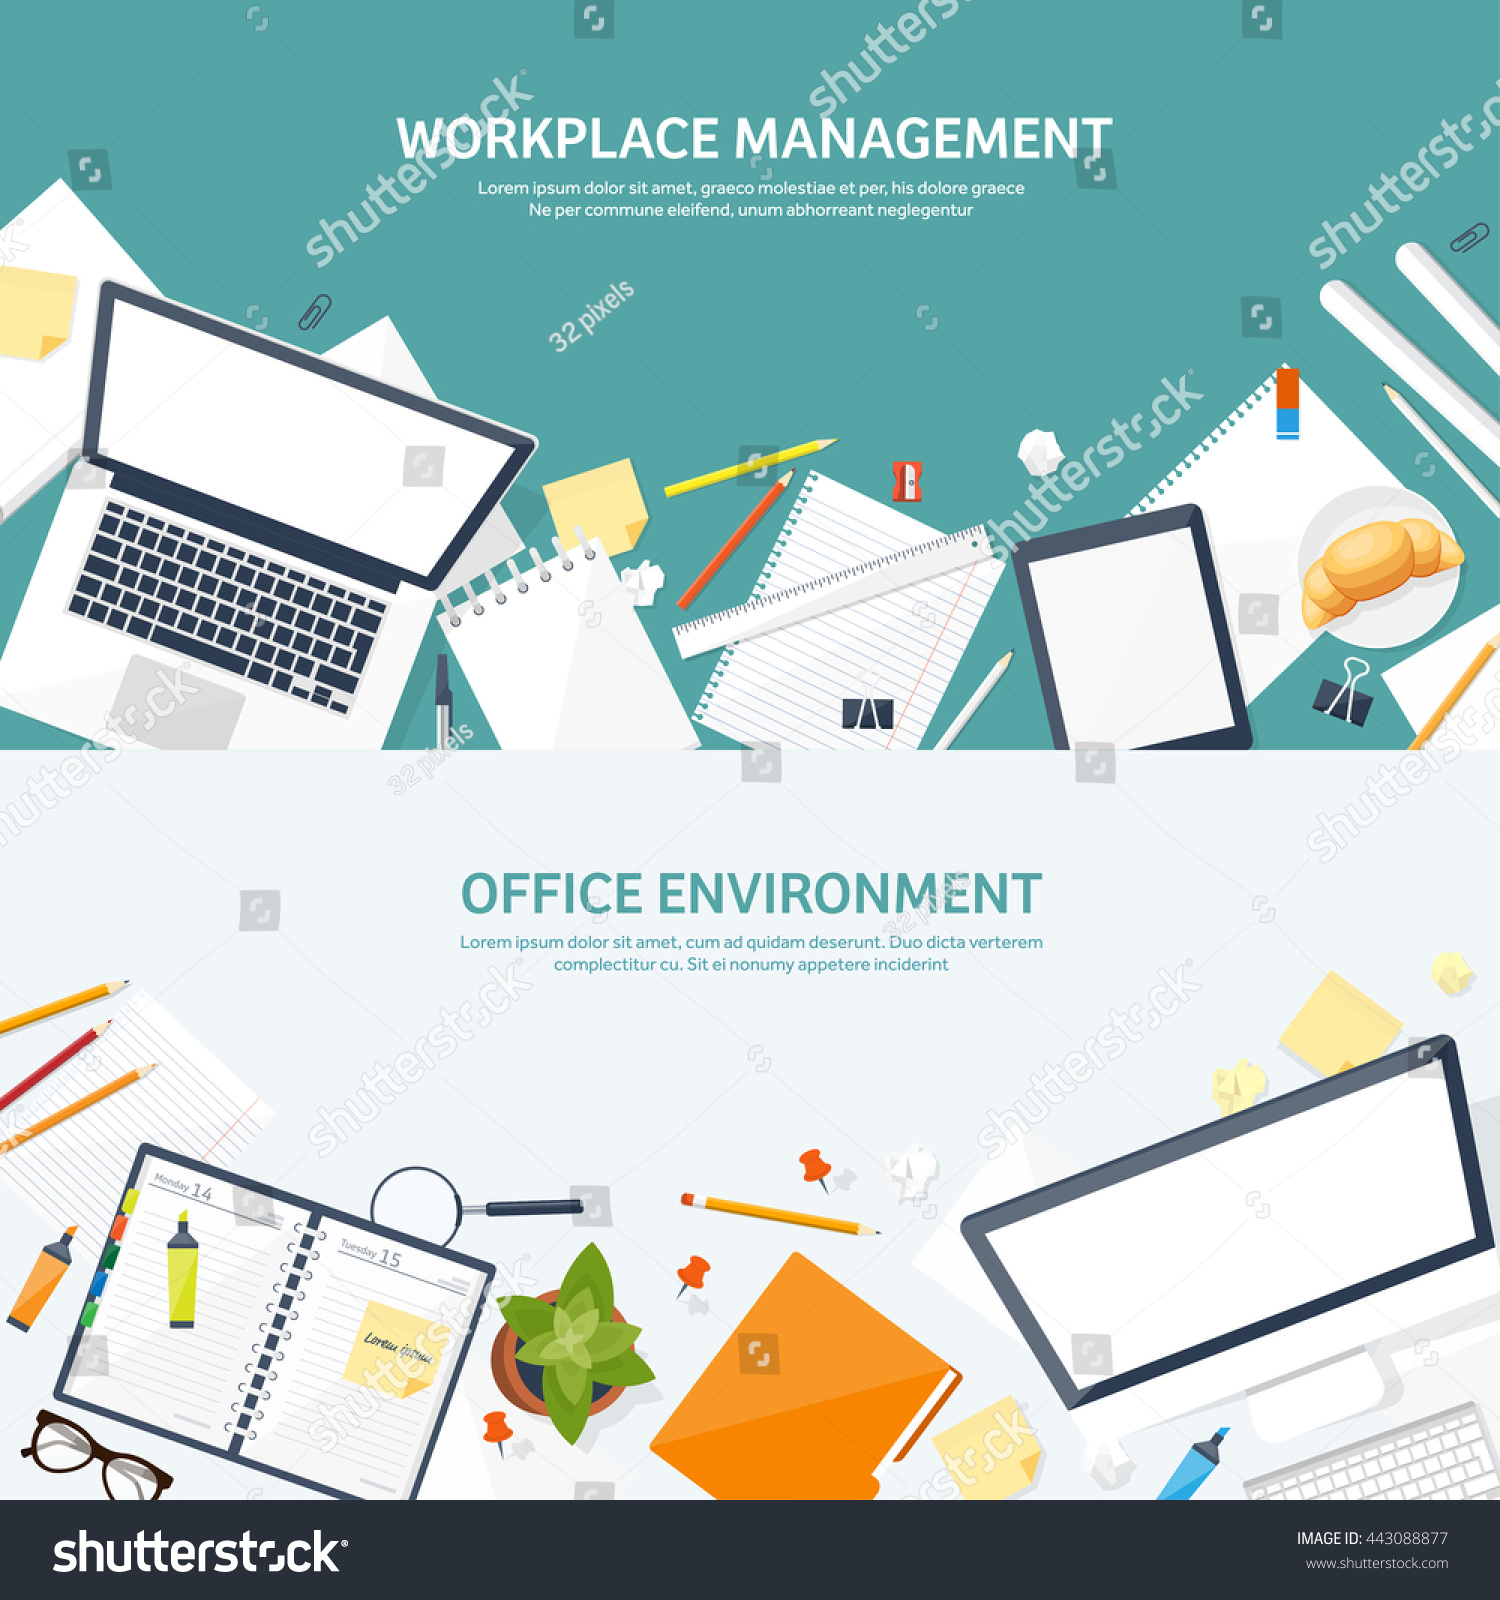 How to organize a workplace